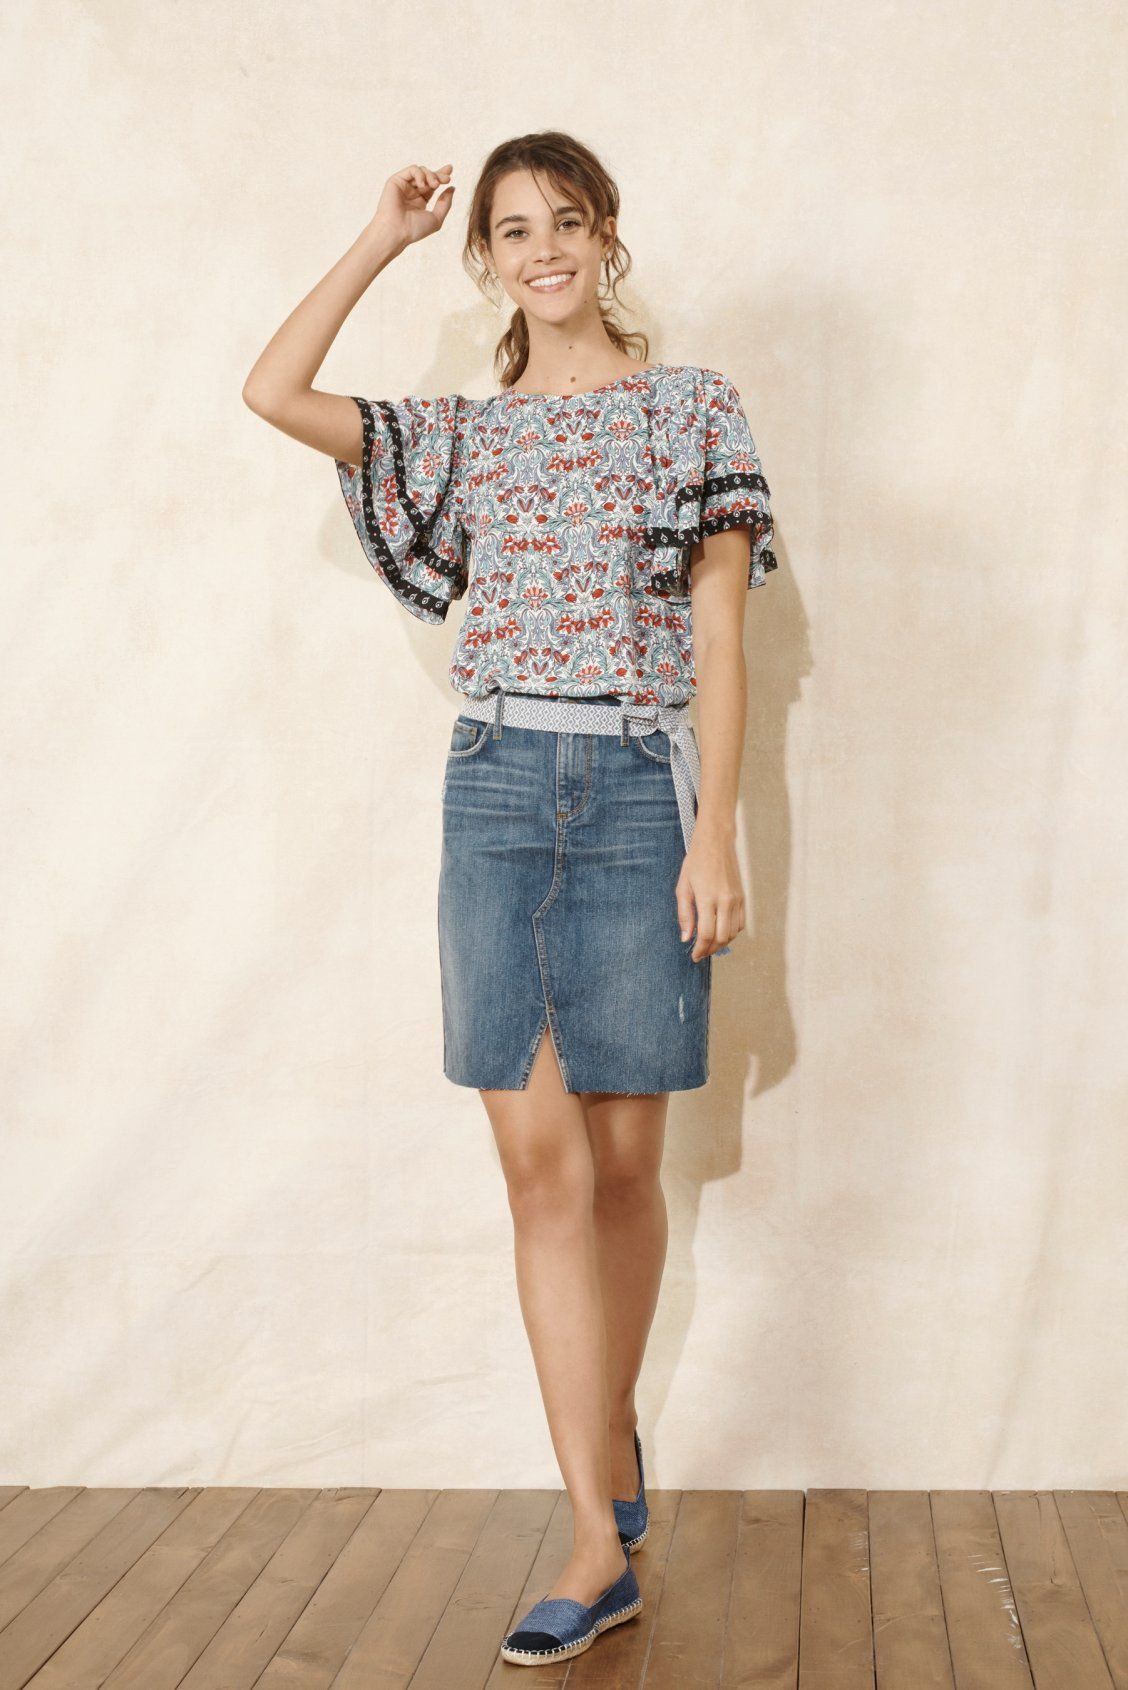 14a6537a5c We've got a major crush on this denim skirt | Most Loved Looks ...